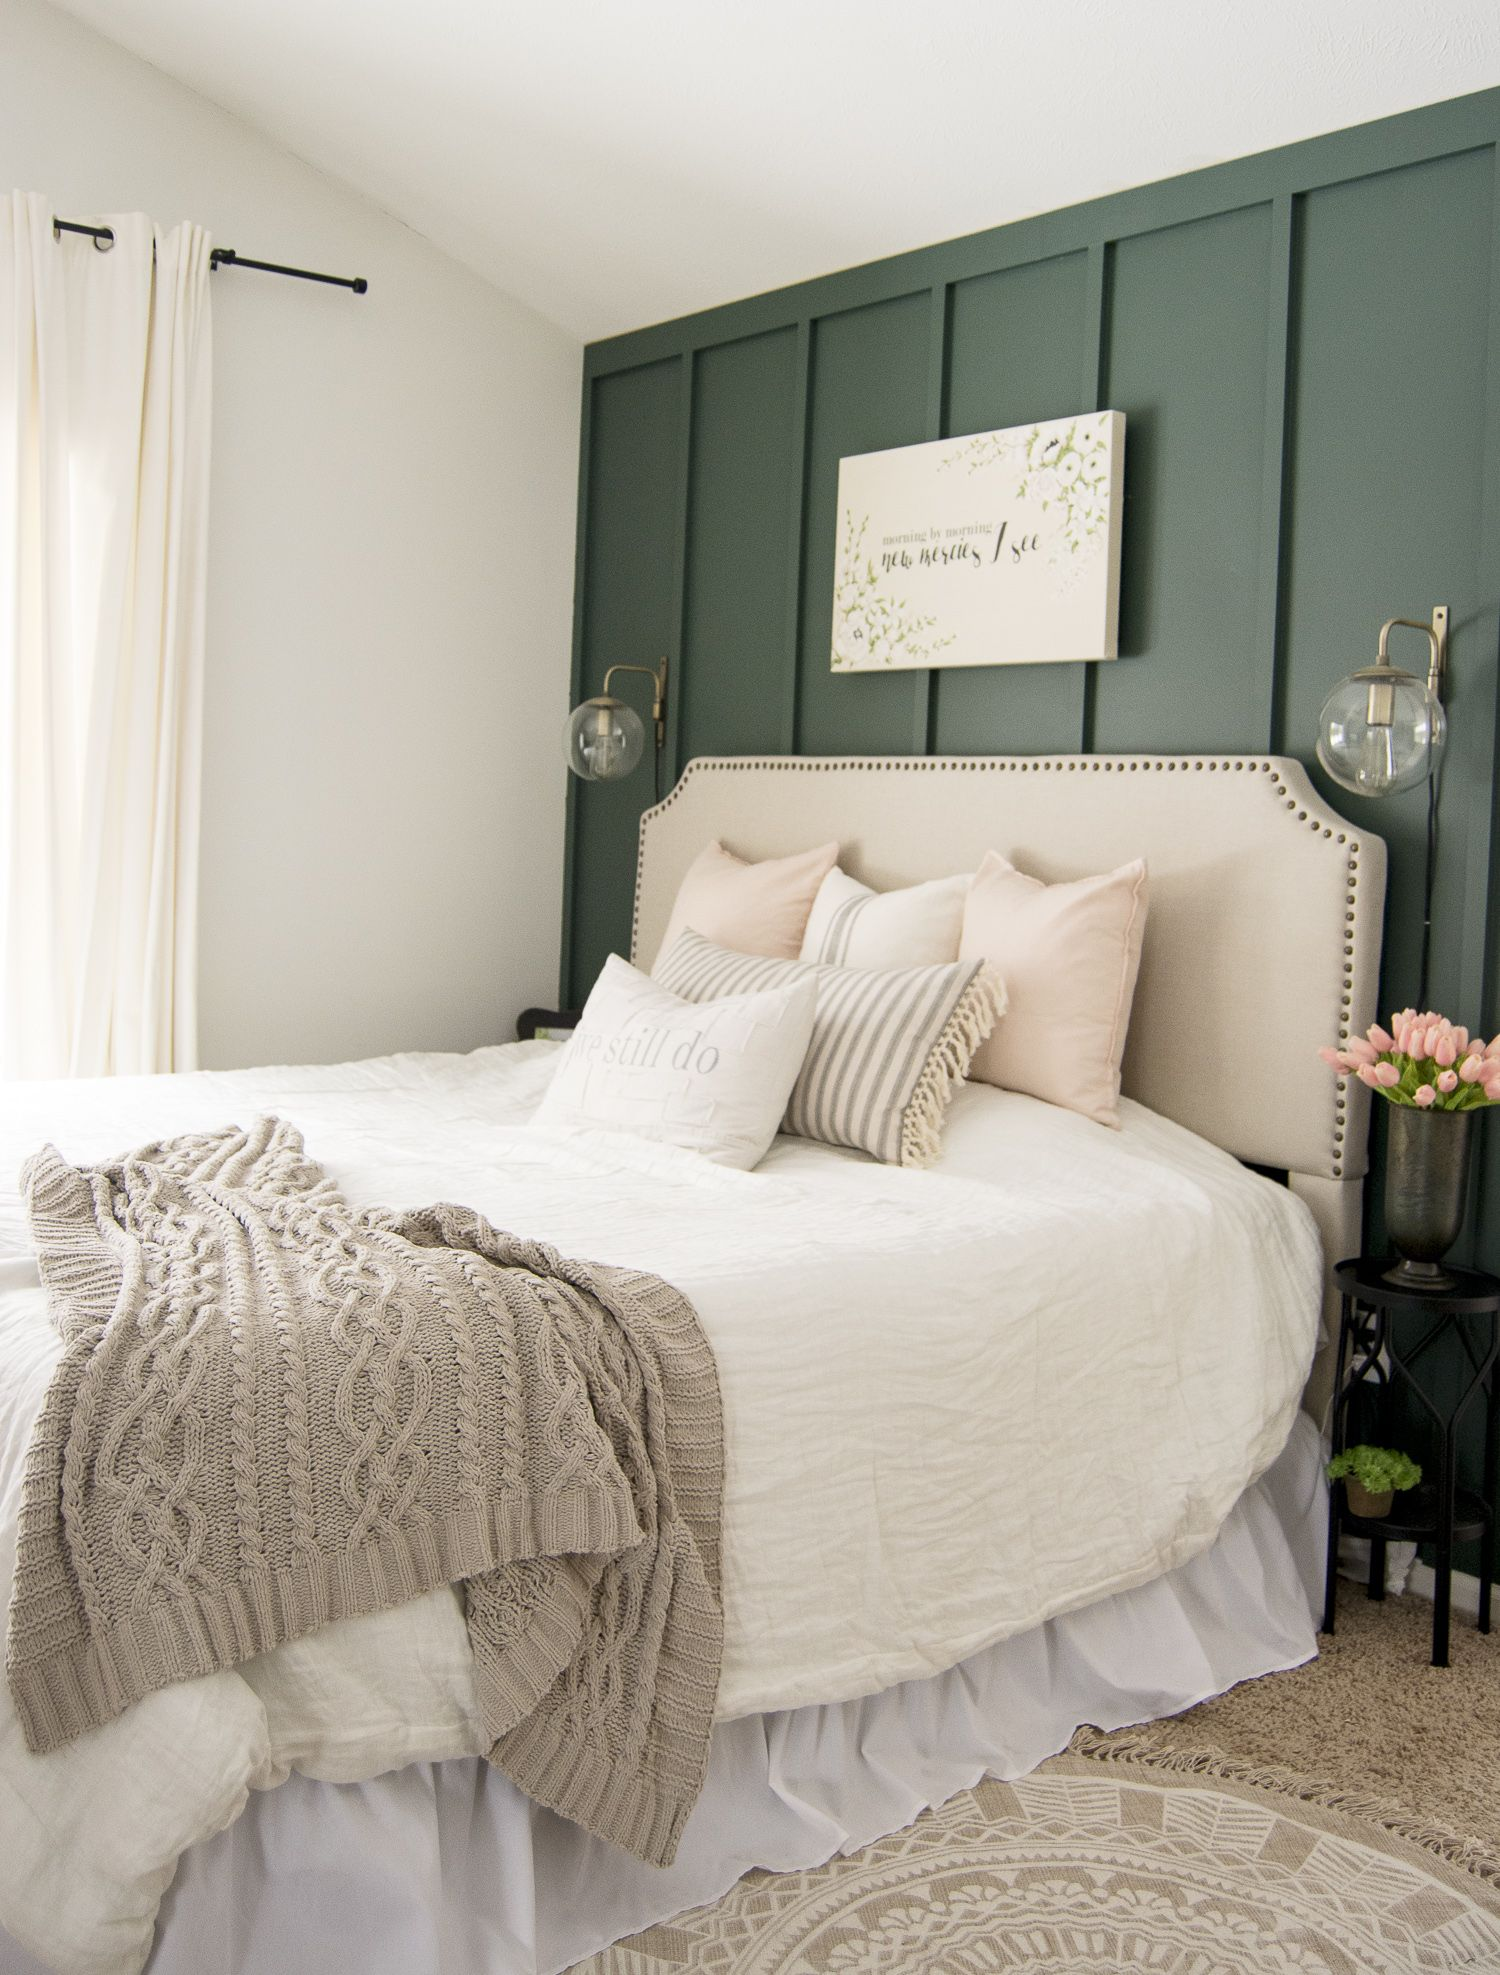 Key Elements of a Modern Farmhouse Bedroom #modernfarmhousestyle